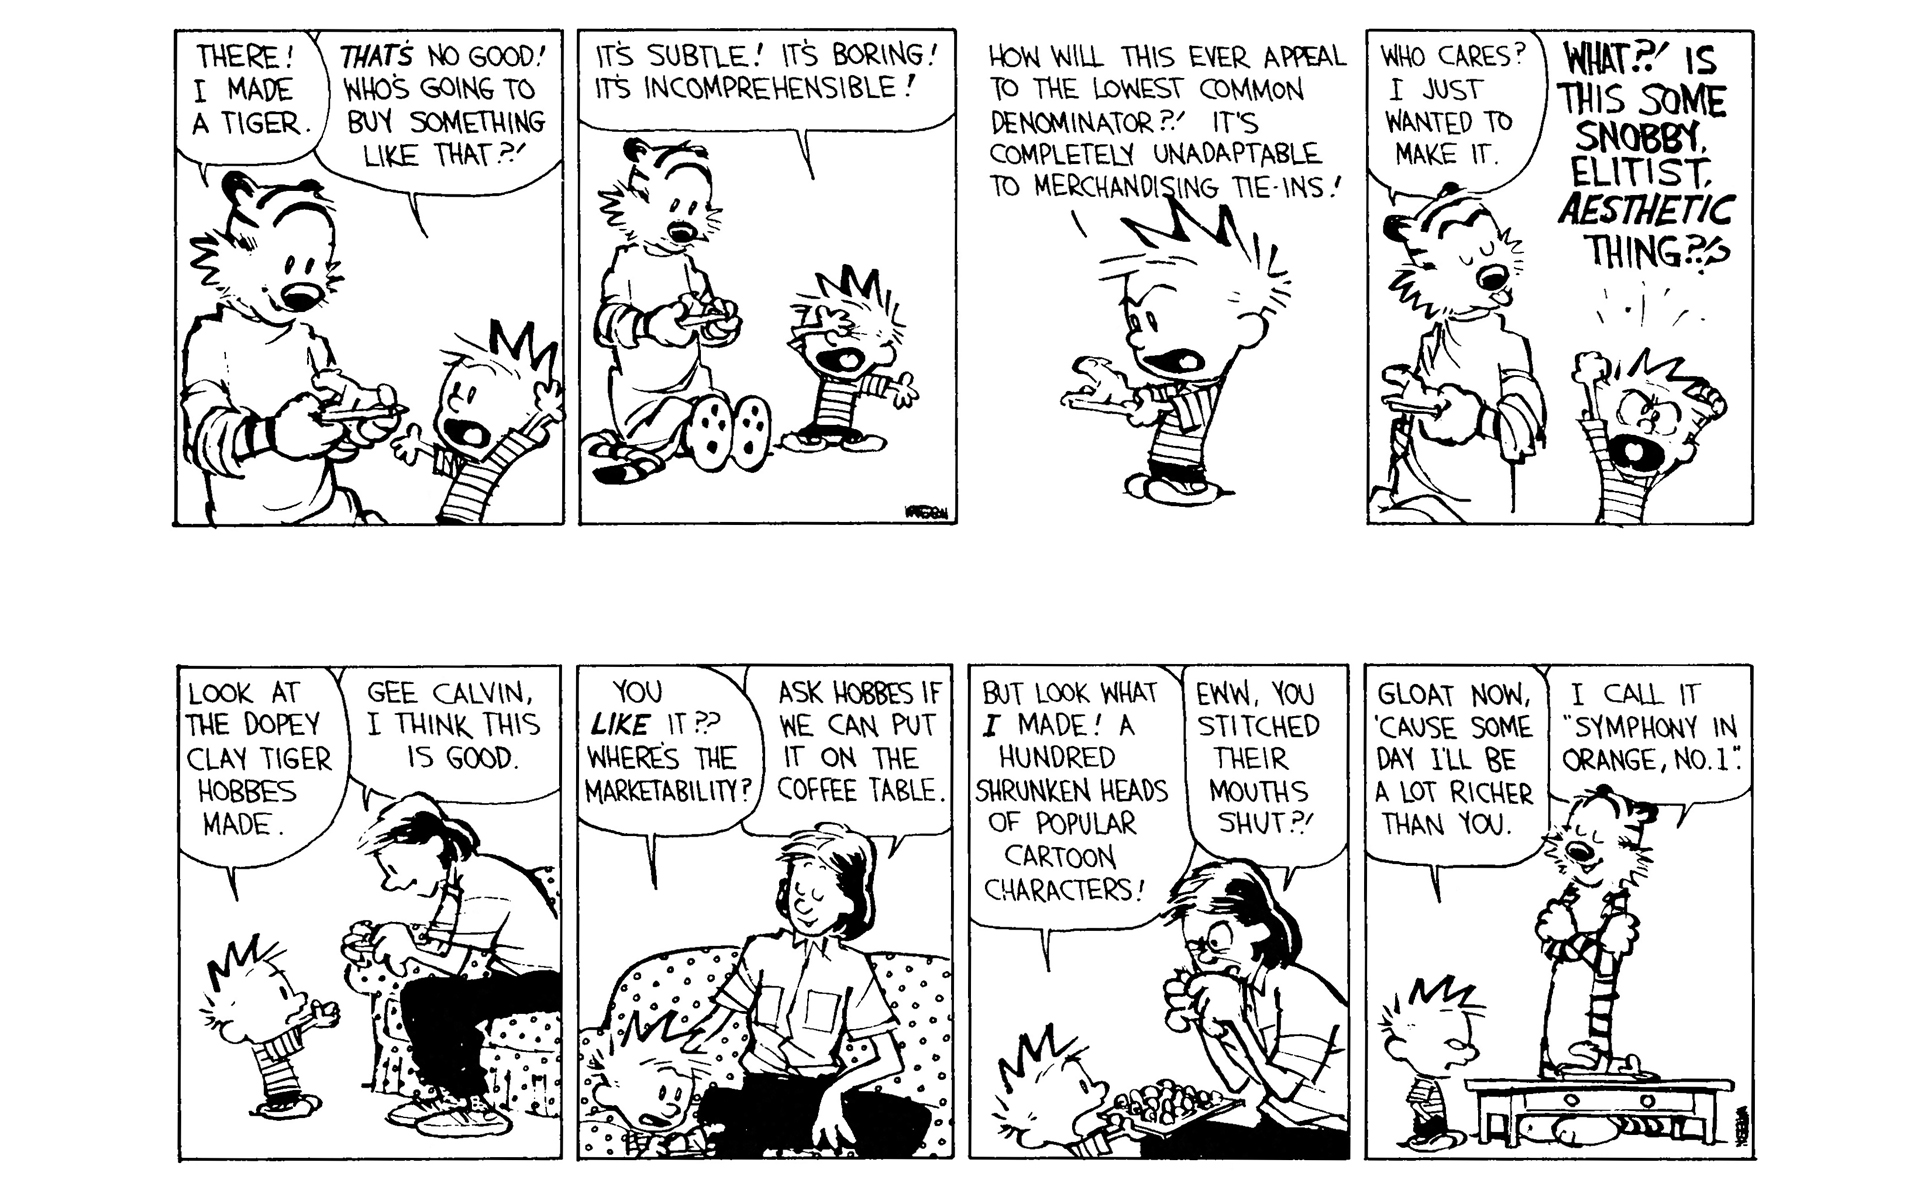 Calvin And Hobbes Coffee Table.Calvin And Hobbes 8 Read Calvin And Hobbes Issue 8 Page 99